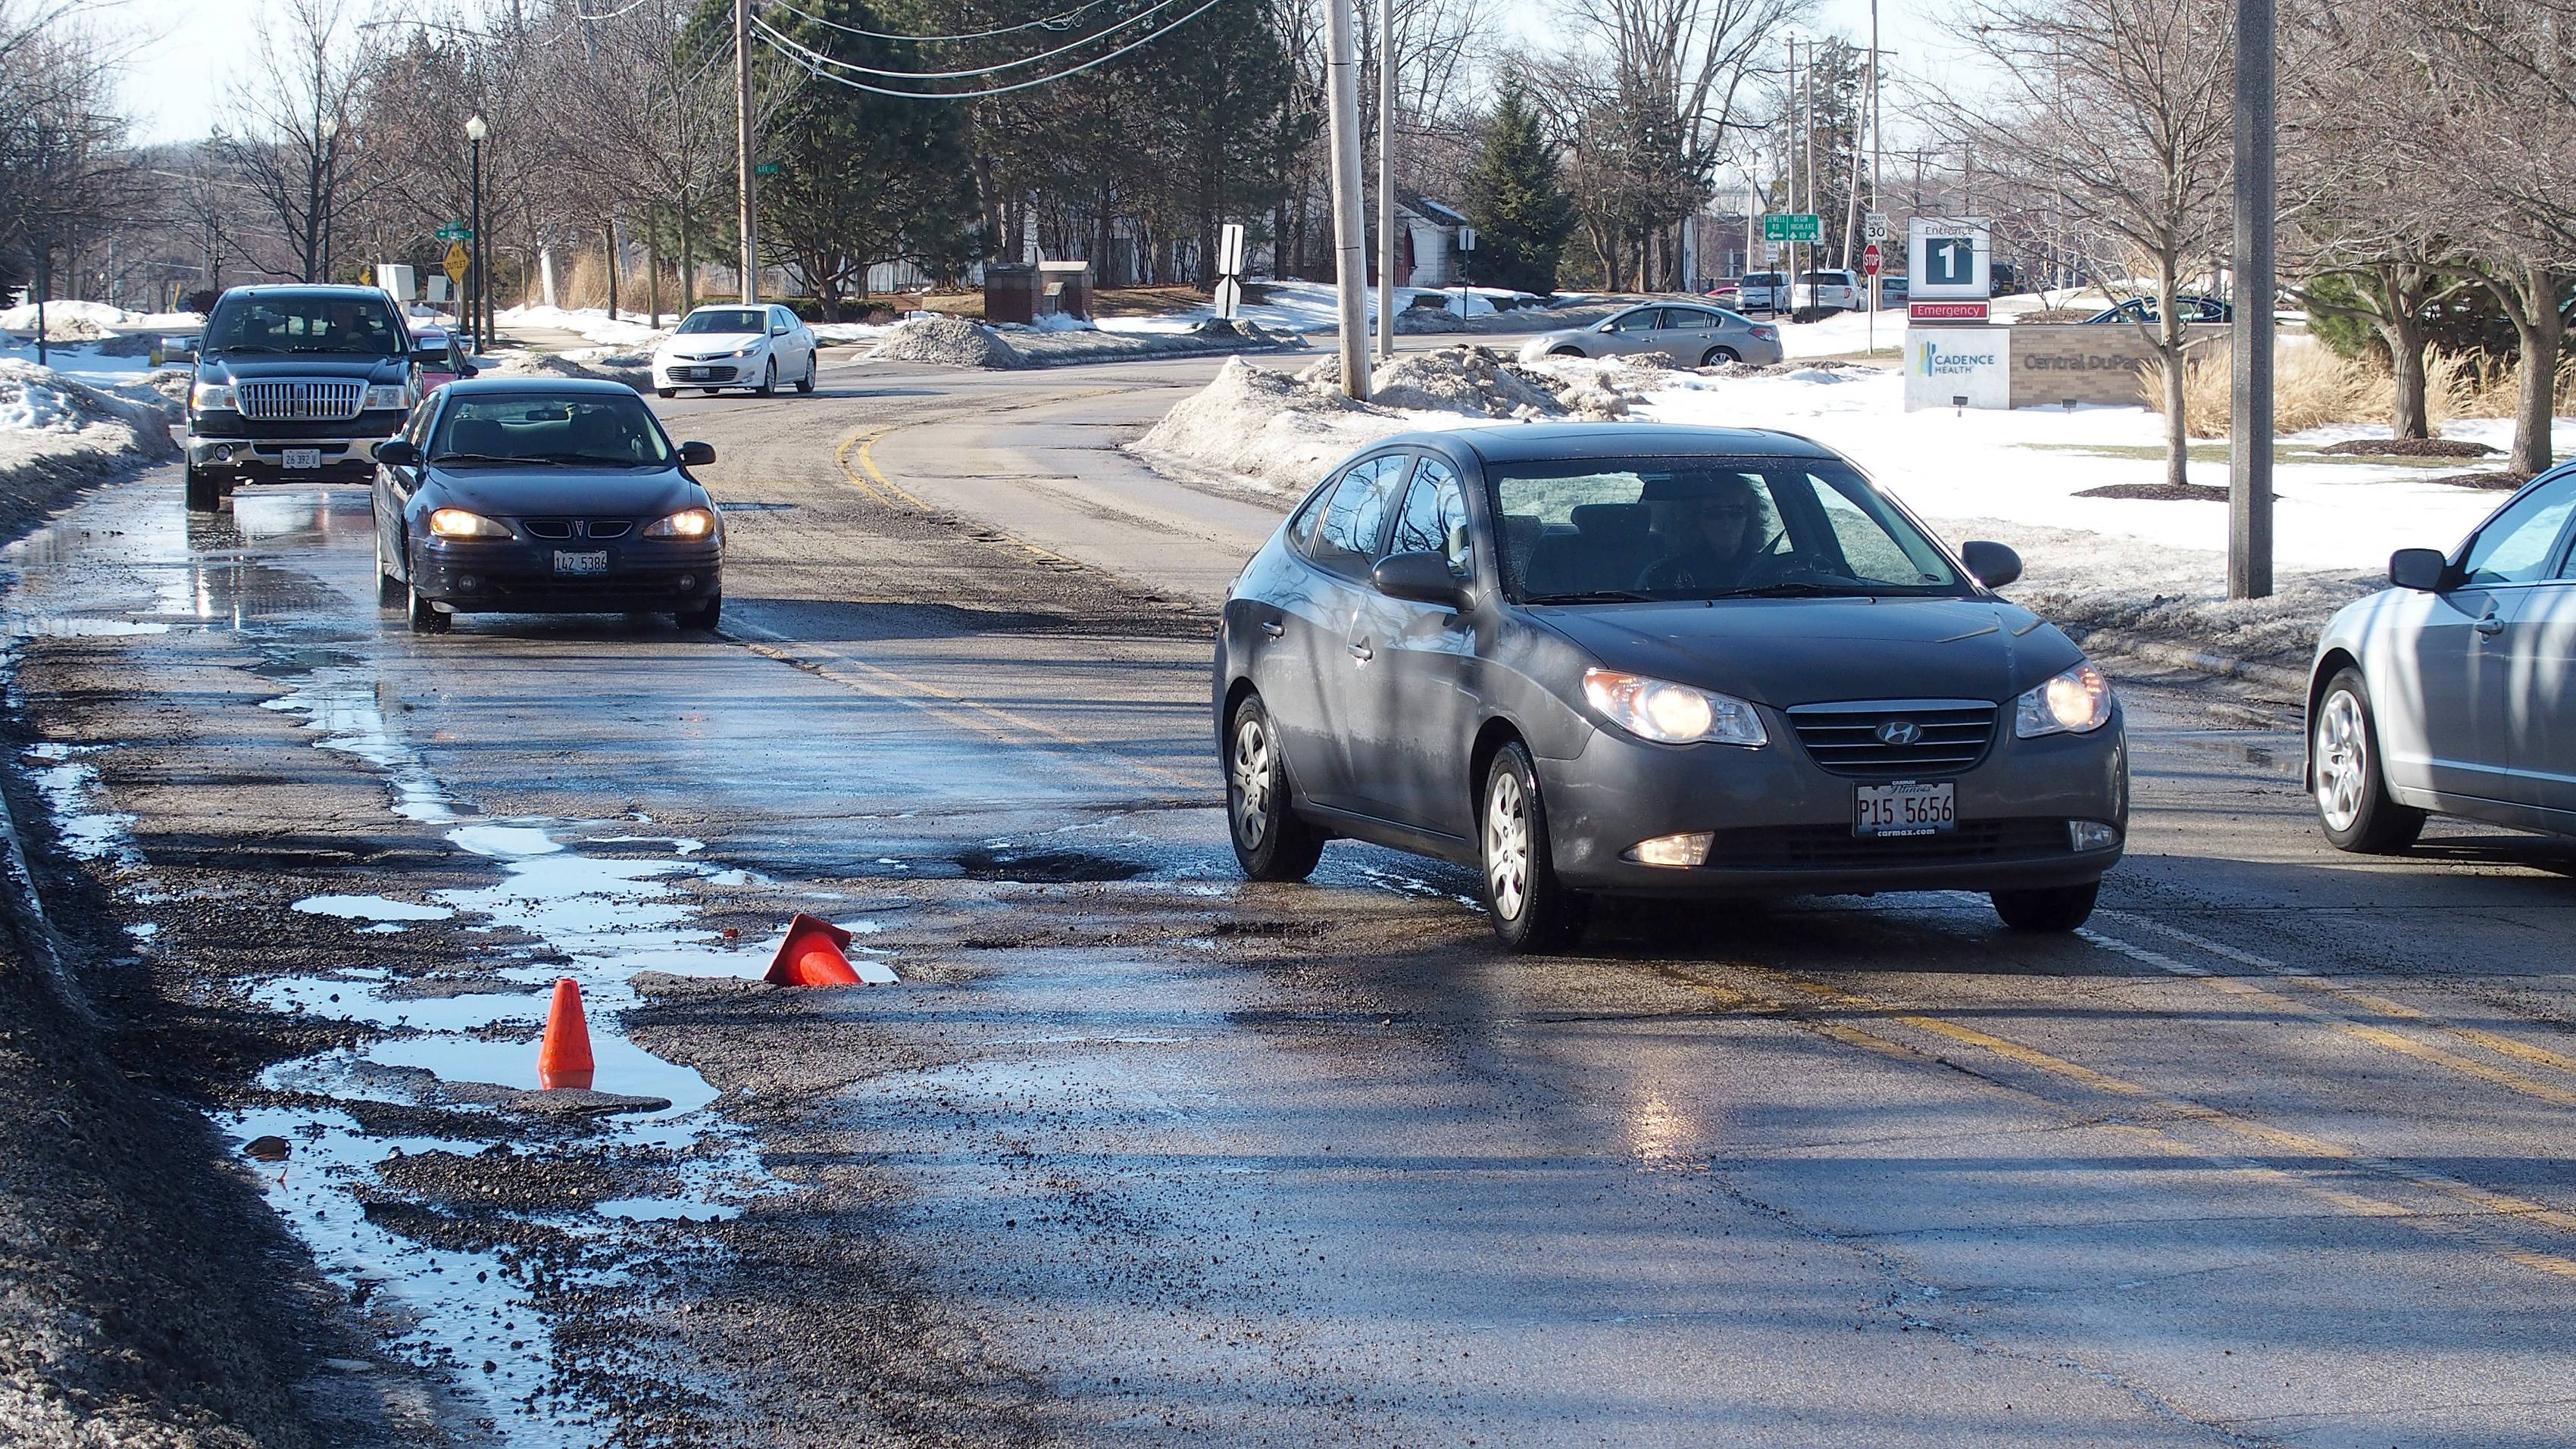 Back in January, there were potholes on Jewell Road in Winfield. Now Jewell and numerous other streets are scheduled for repairs as part of Winfield's multimillion-dollar road program for 2014. Work already has begun on neighborhood streets.